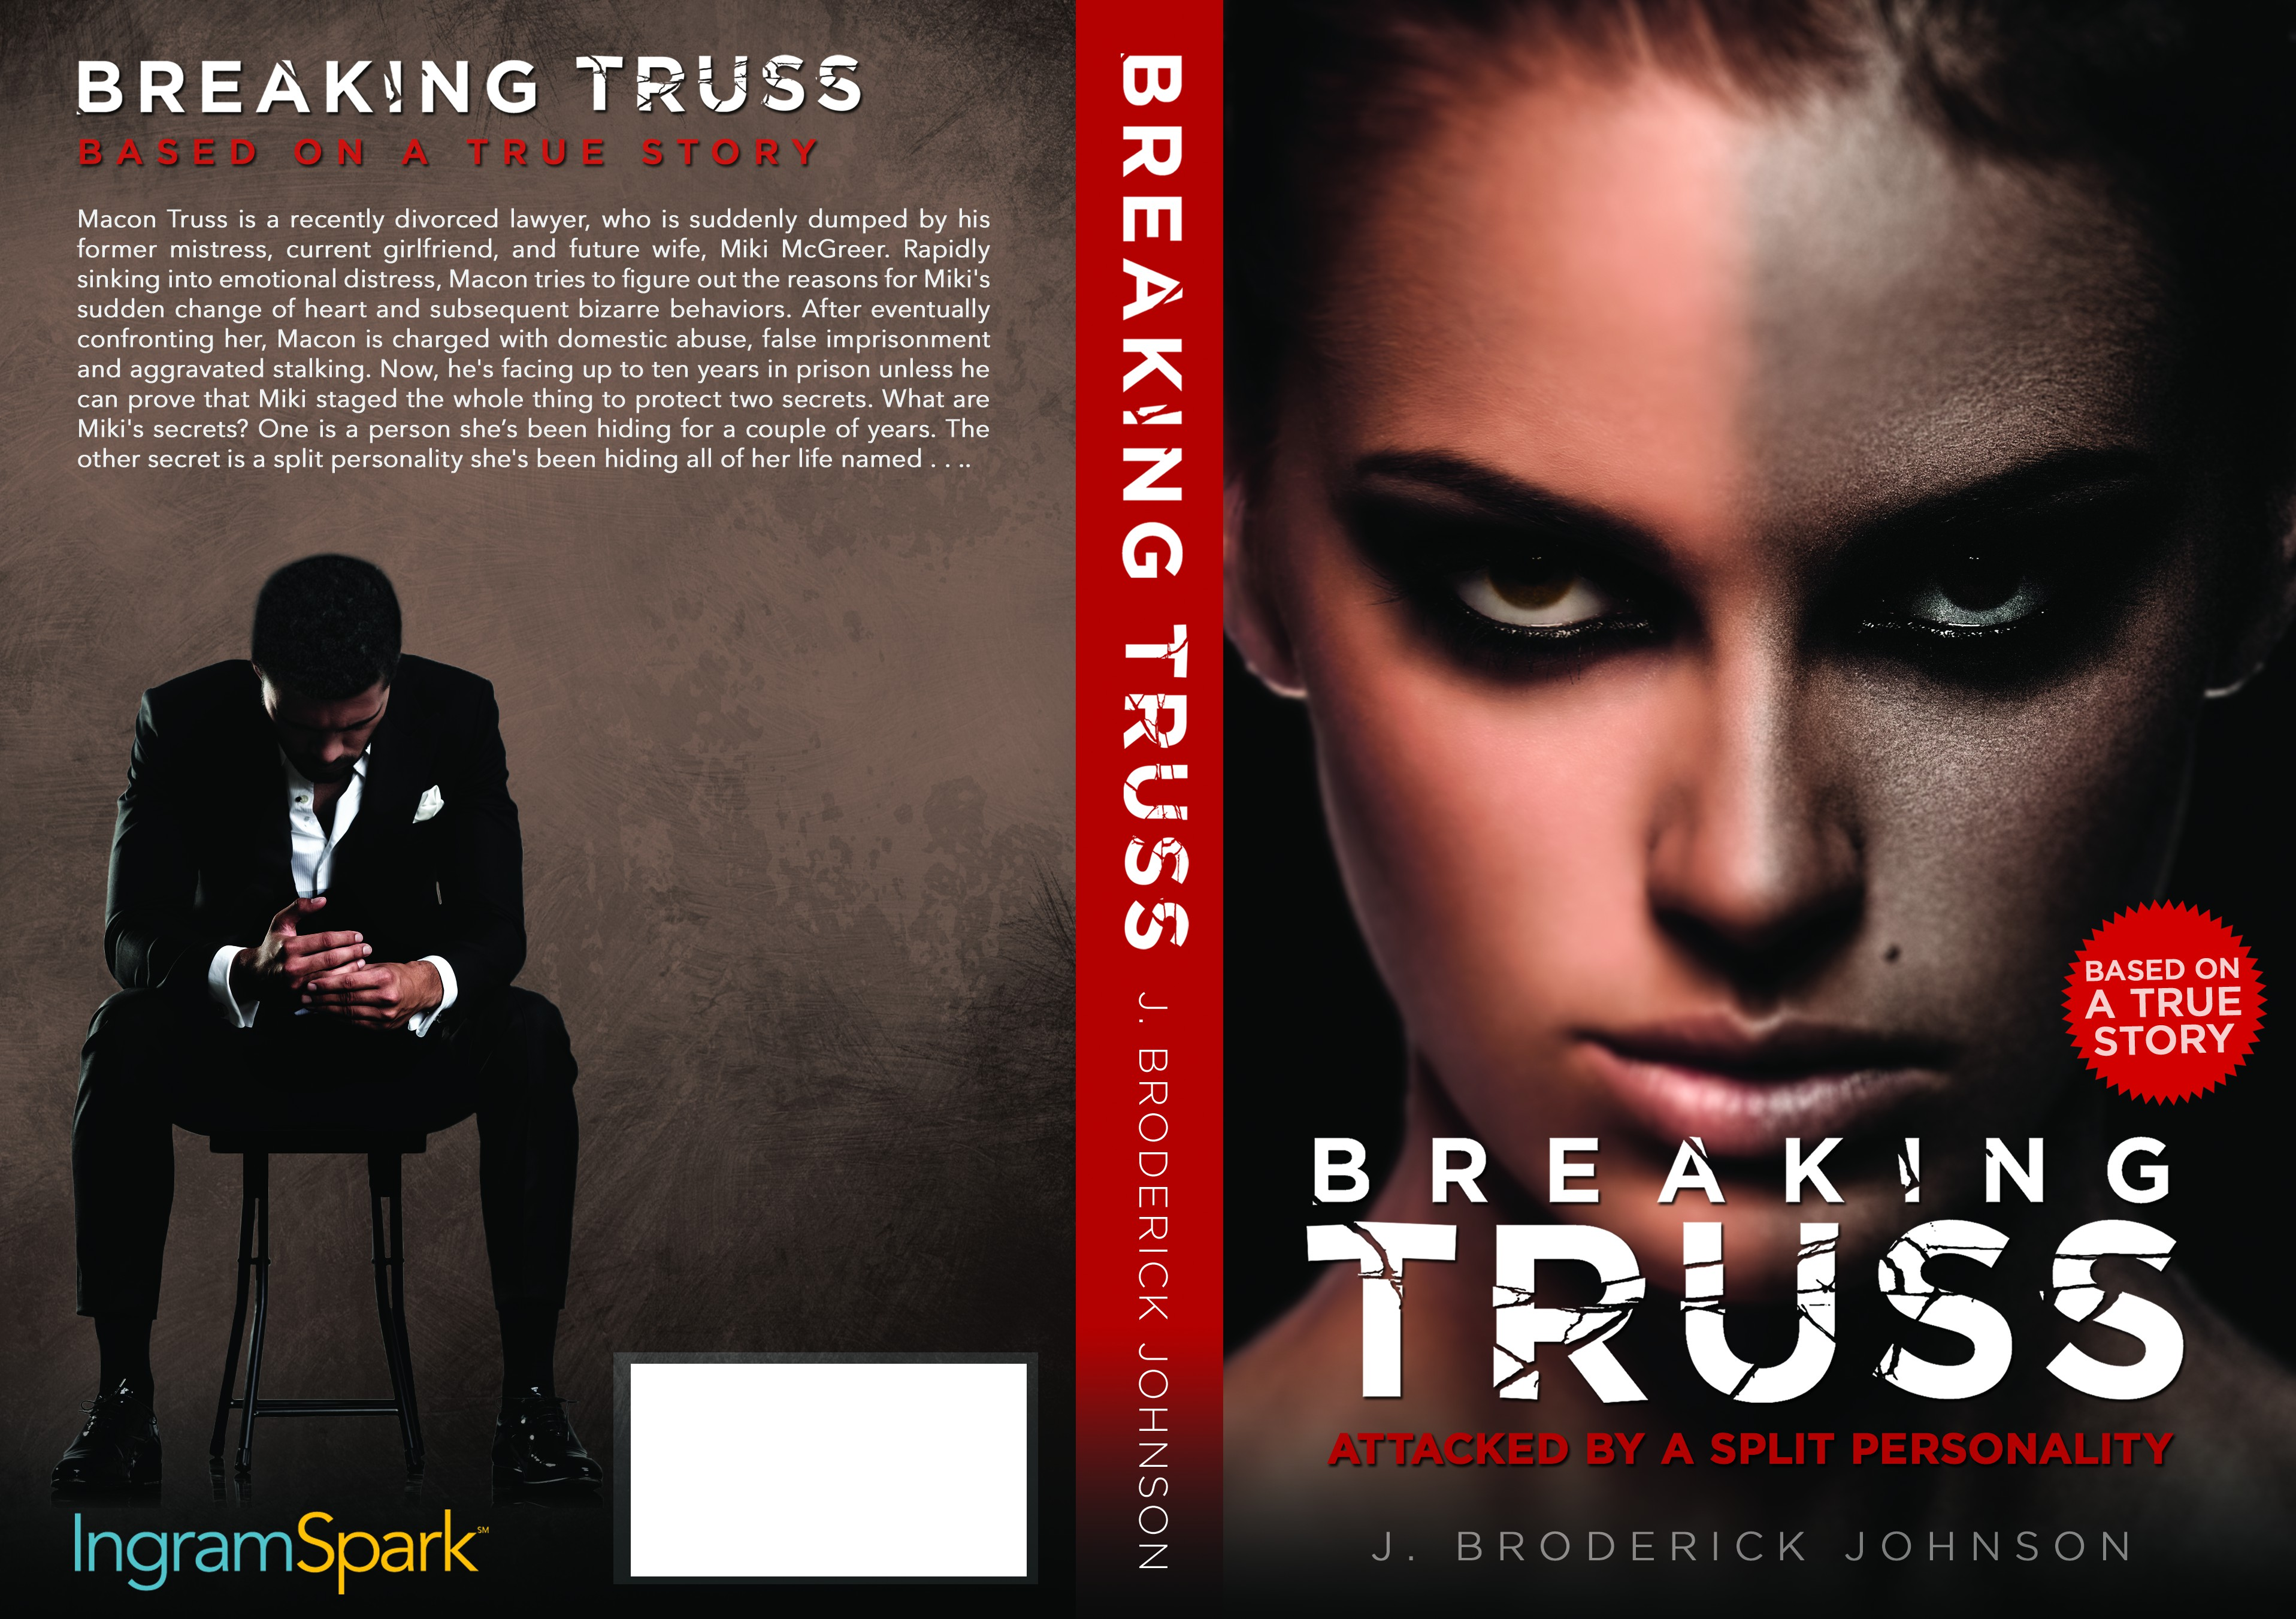 Need book cover for true story of lawyer whose life is ruined by girlfriend who has split personality